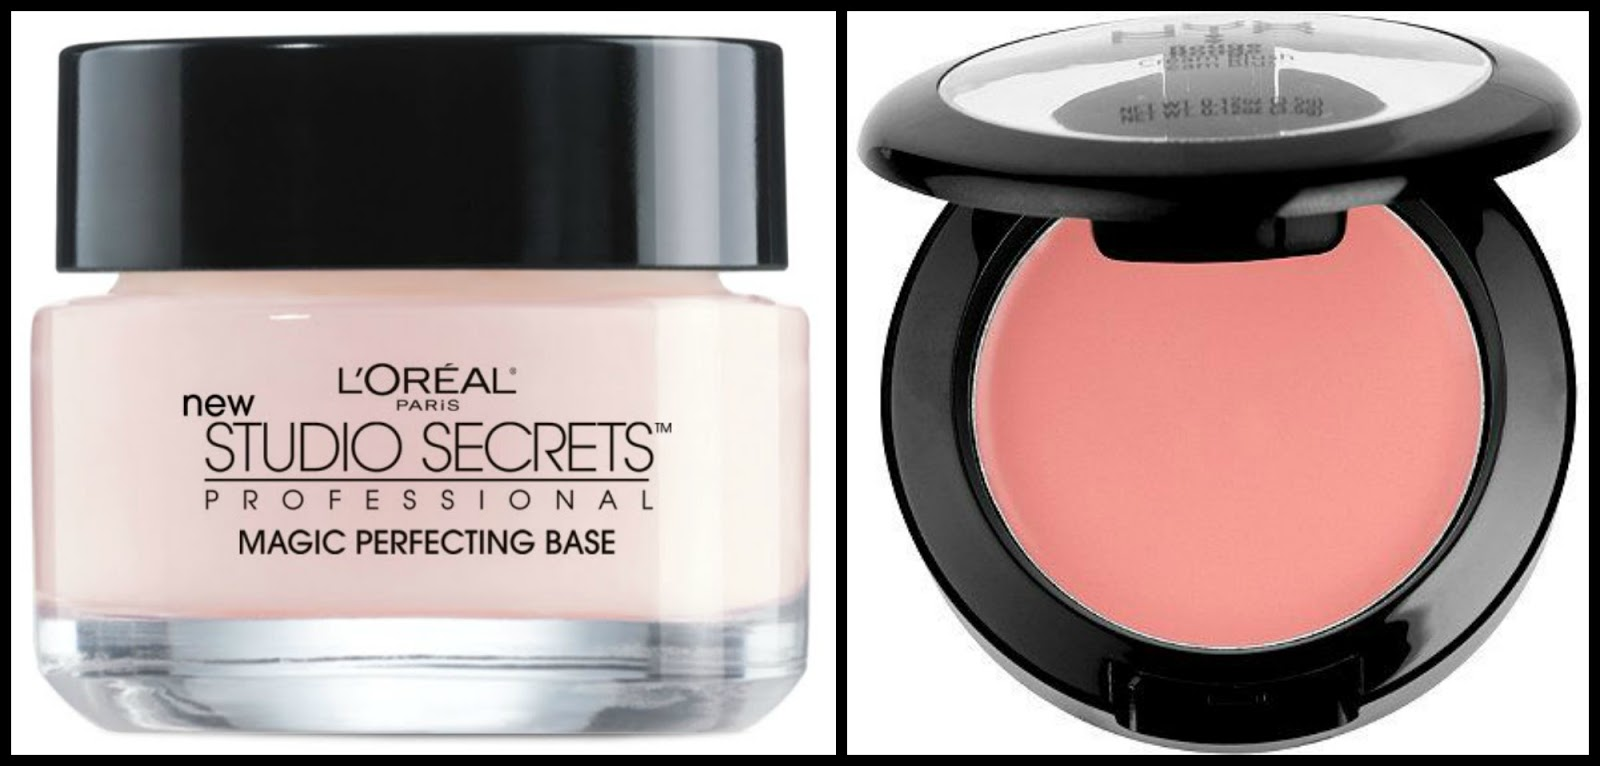 5 Great TOTALLY BUDGET FRIENDLY Products that Keep Your Makeup ON Longer! 3 products are under $10 and the other two are under $15! Budget friendly, drugstore primers | L'Oreal Studio Secrets Professional Magic Perfecting Base face primer, Nyx Cosmetics cream blush - Manicurity.com